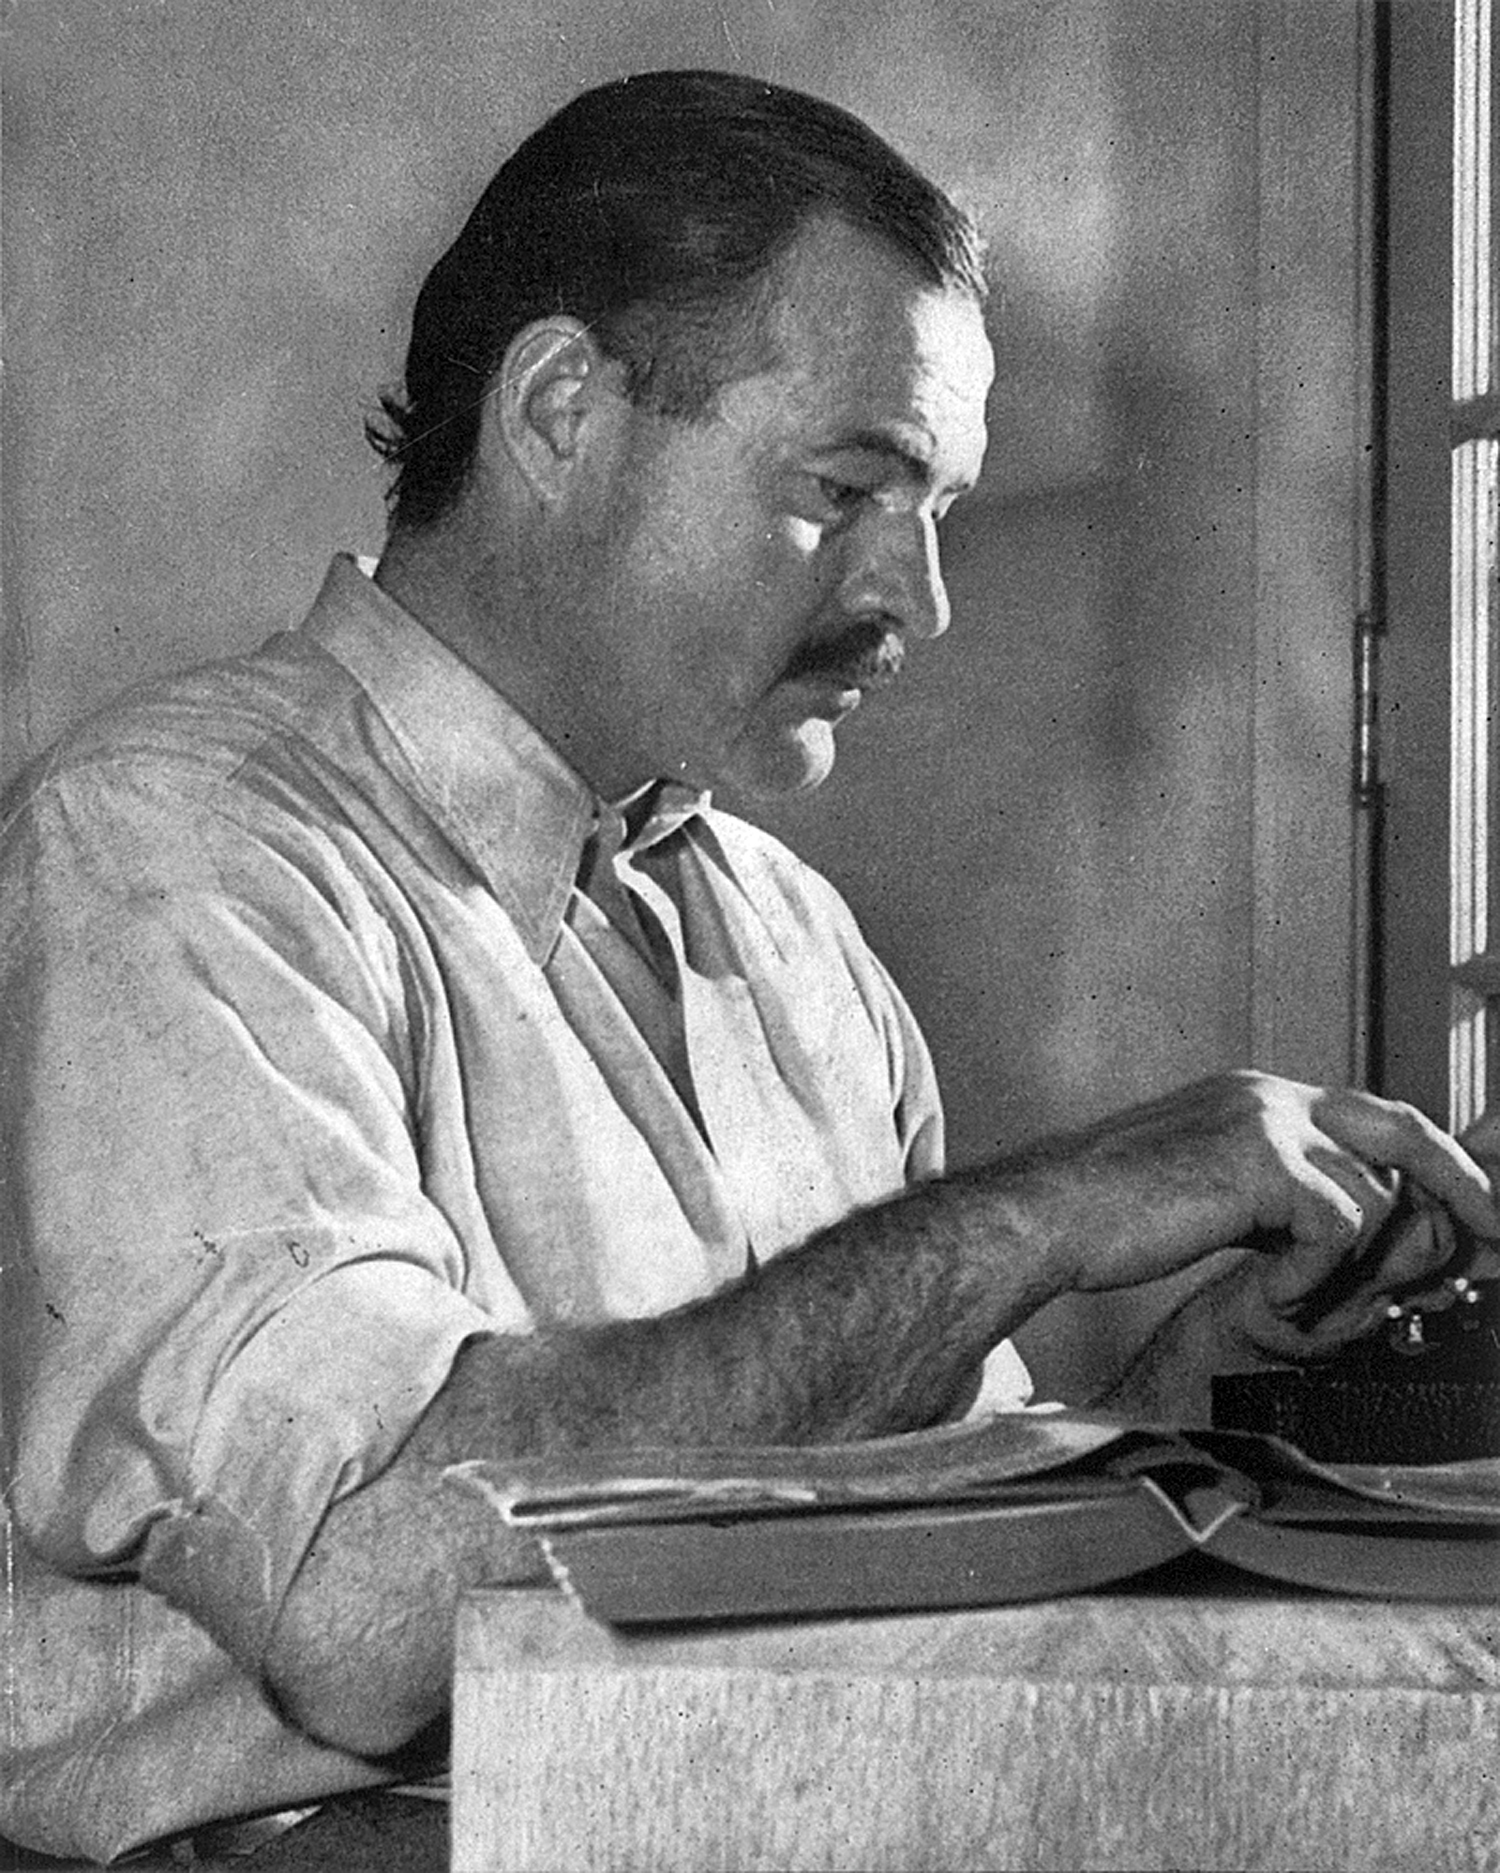 Hemingway posing for a dust jacket photo by Ll...